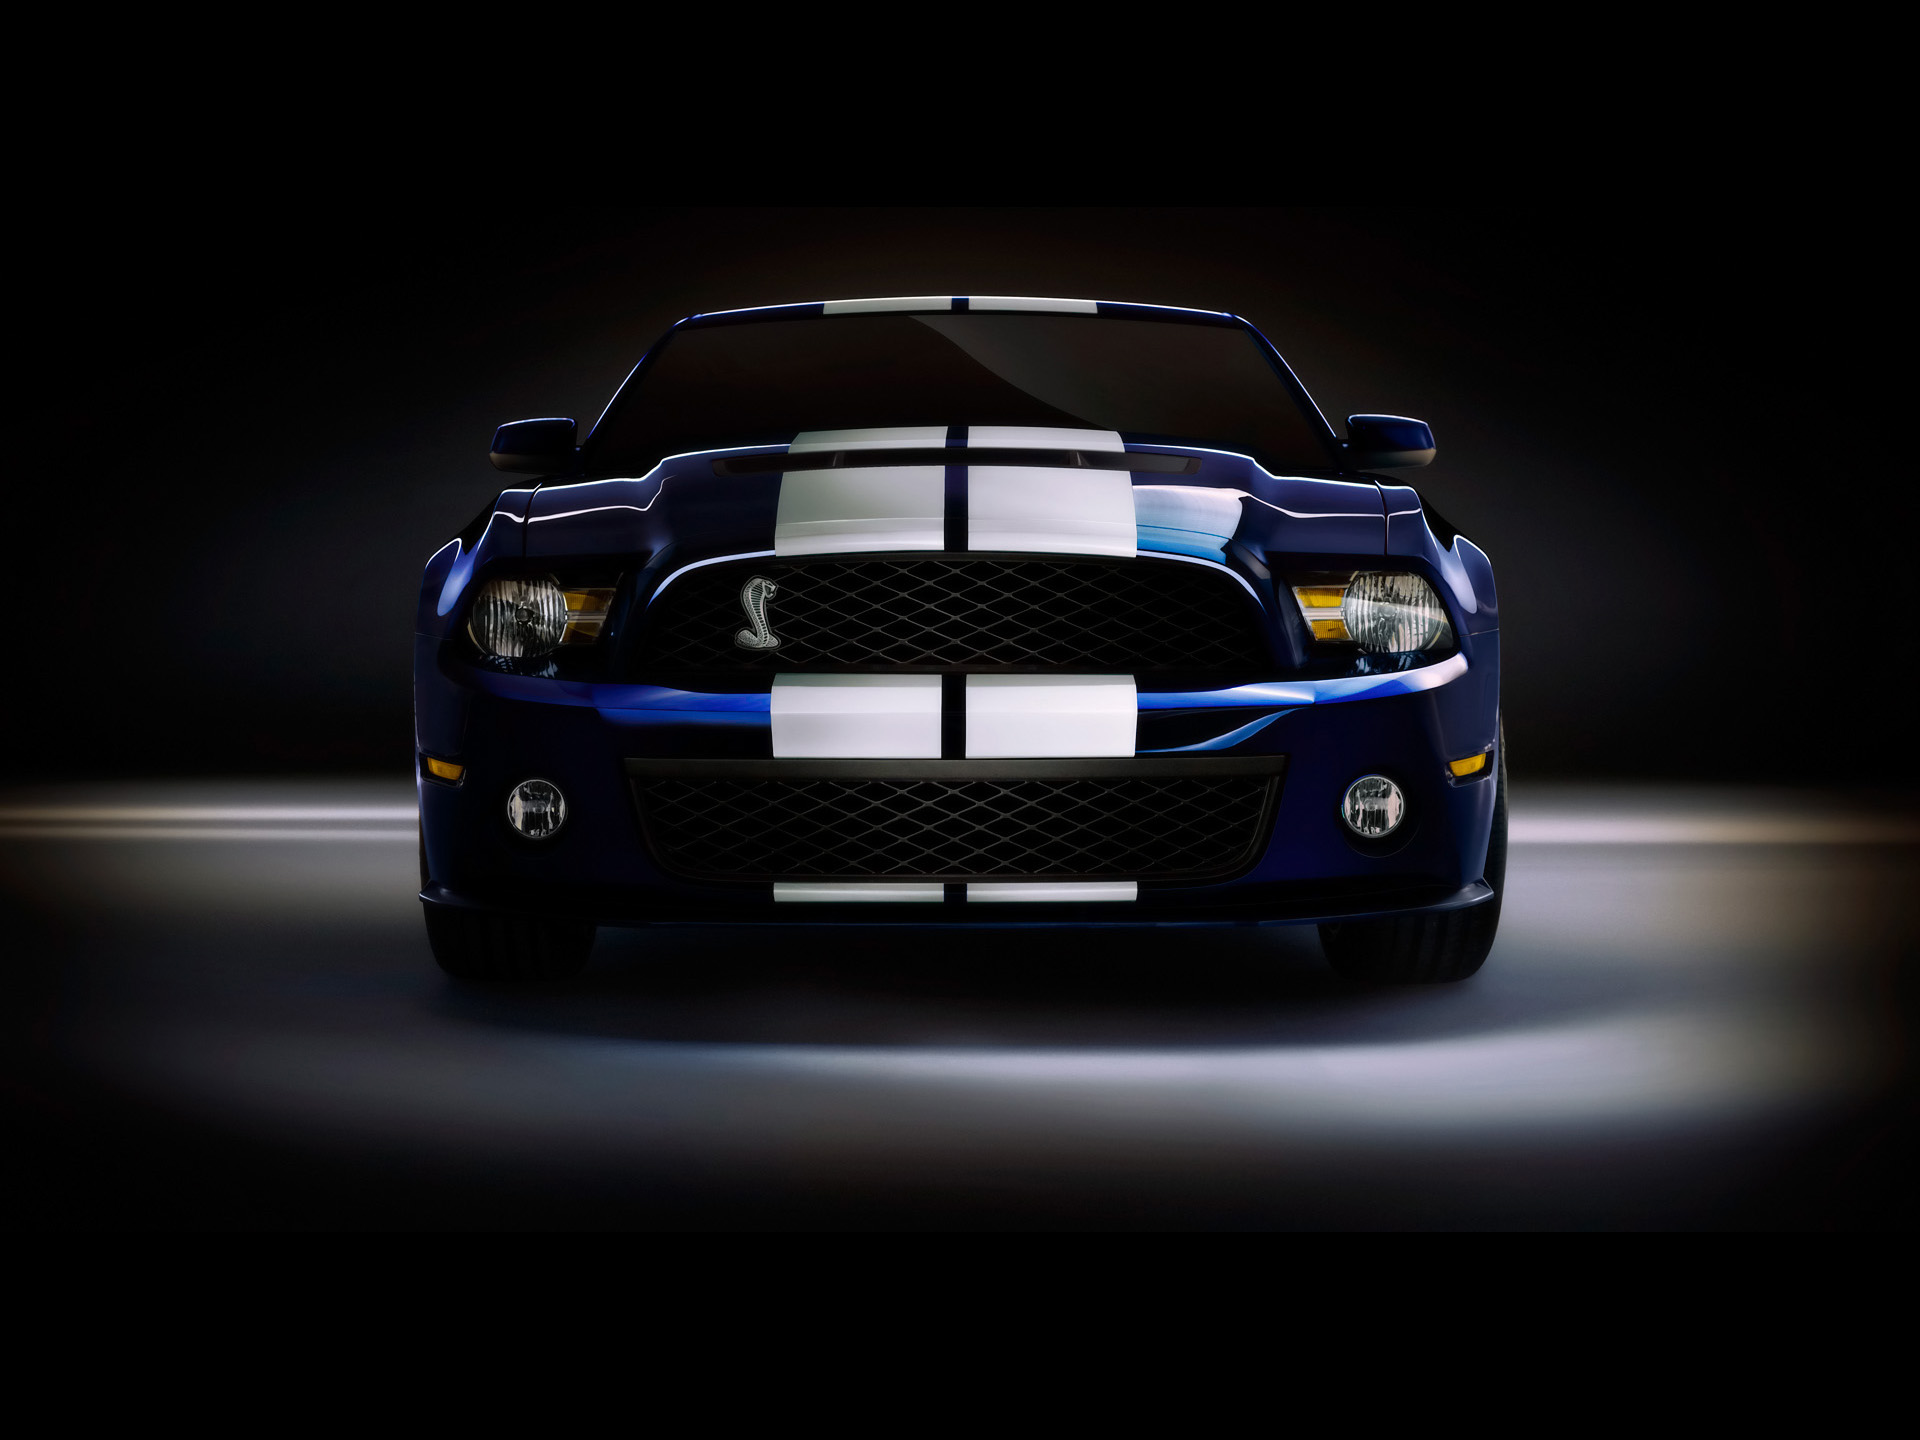 Ford Shelby GT500 Front Top wallpapers  Ford Shelby GT500 Front